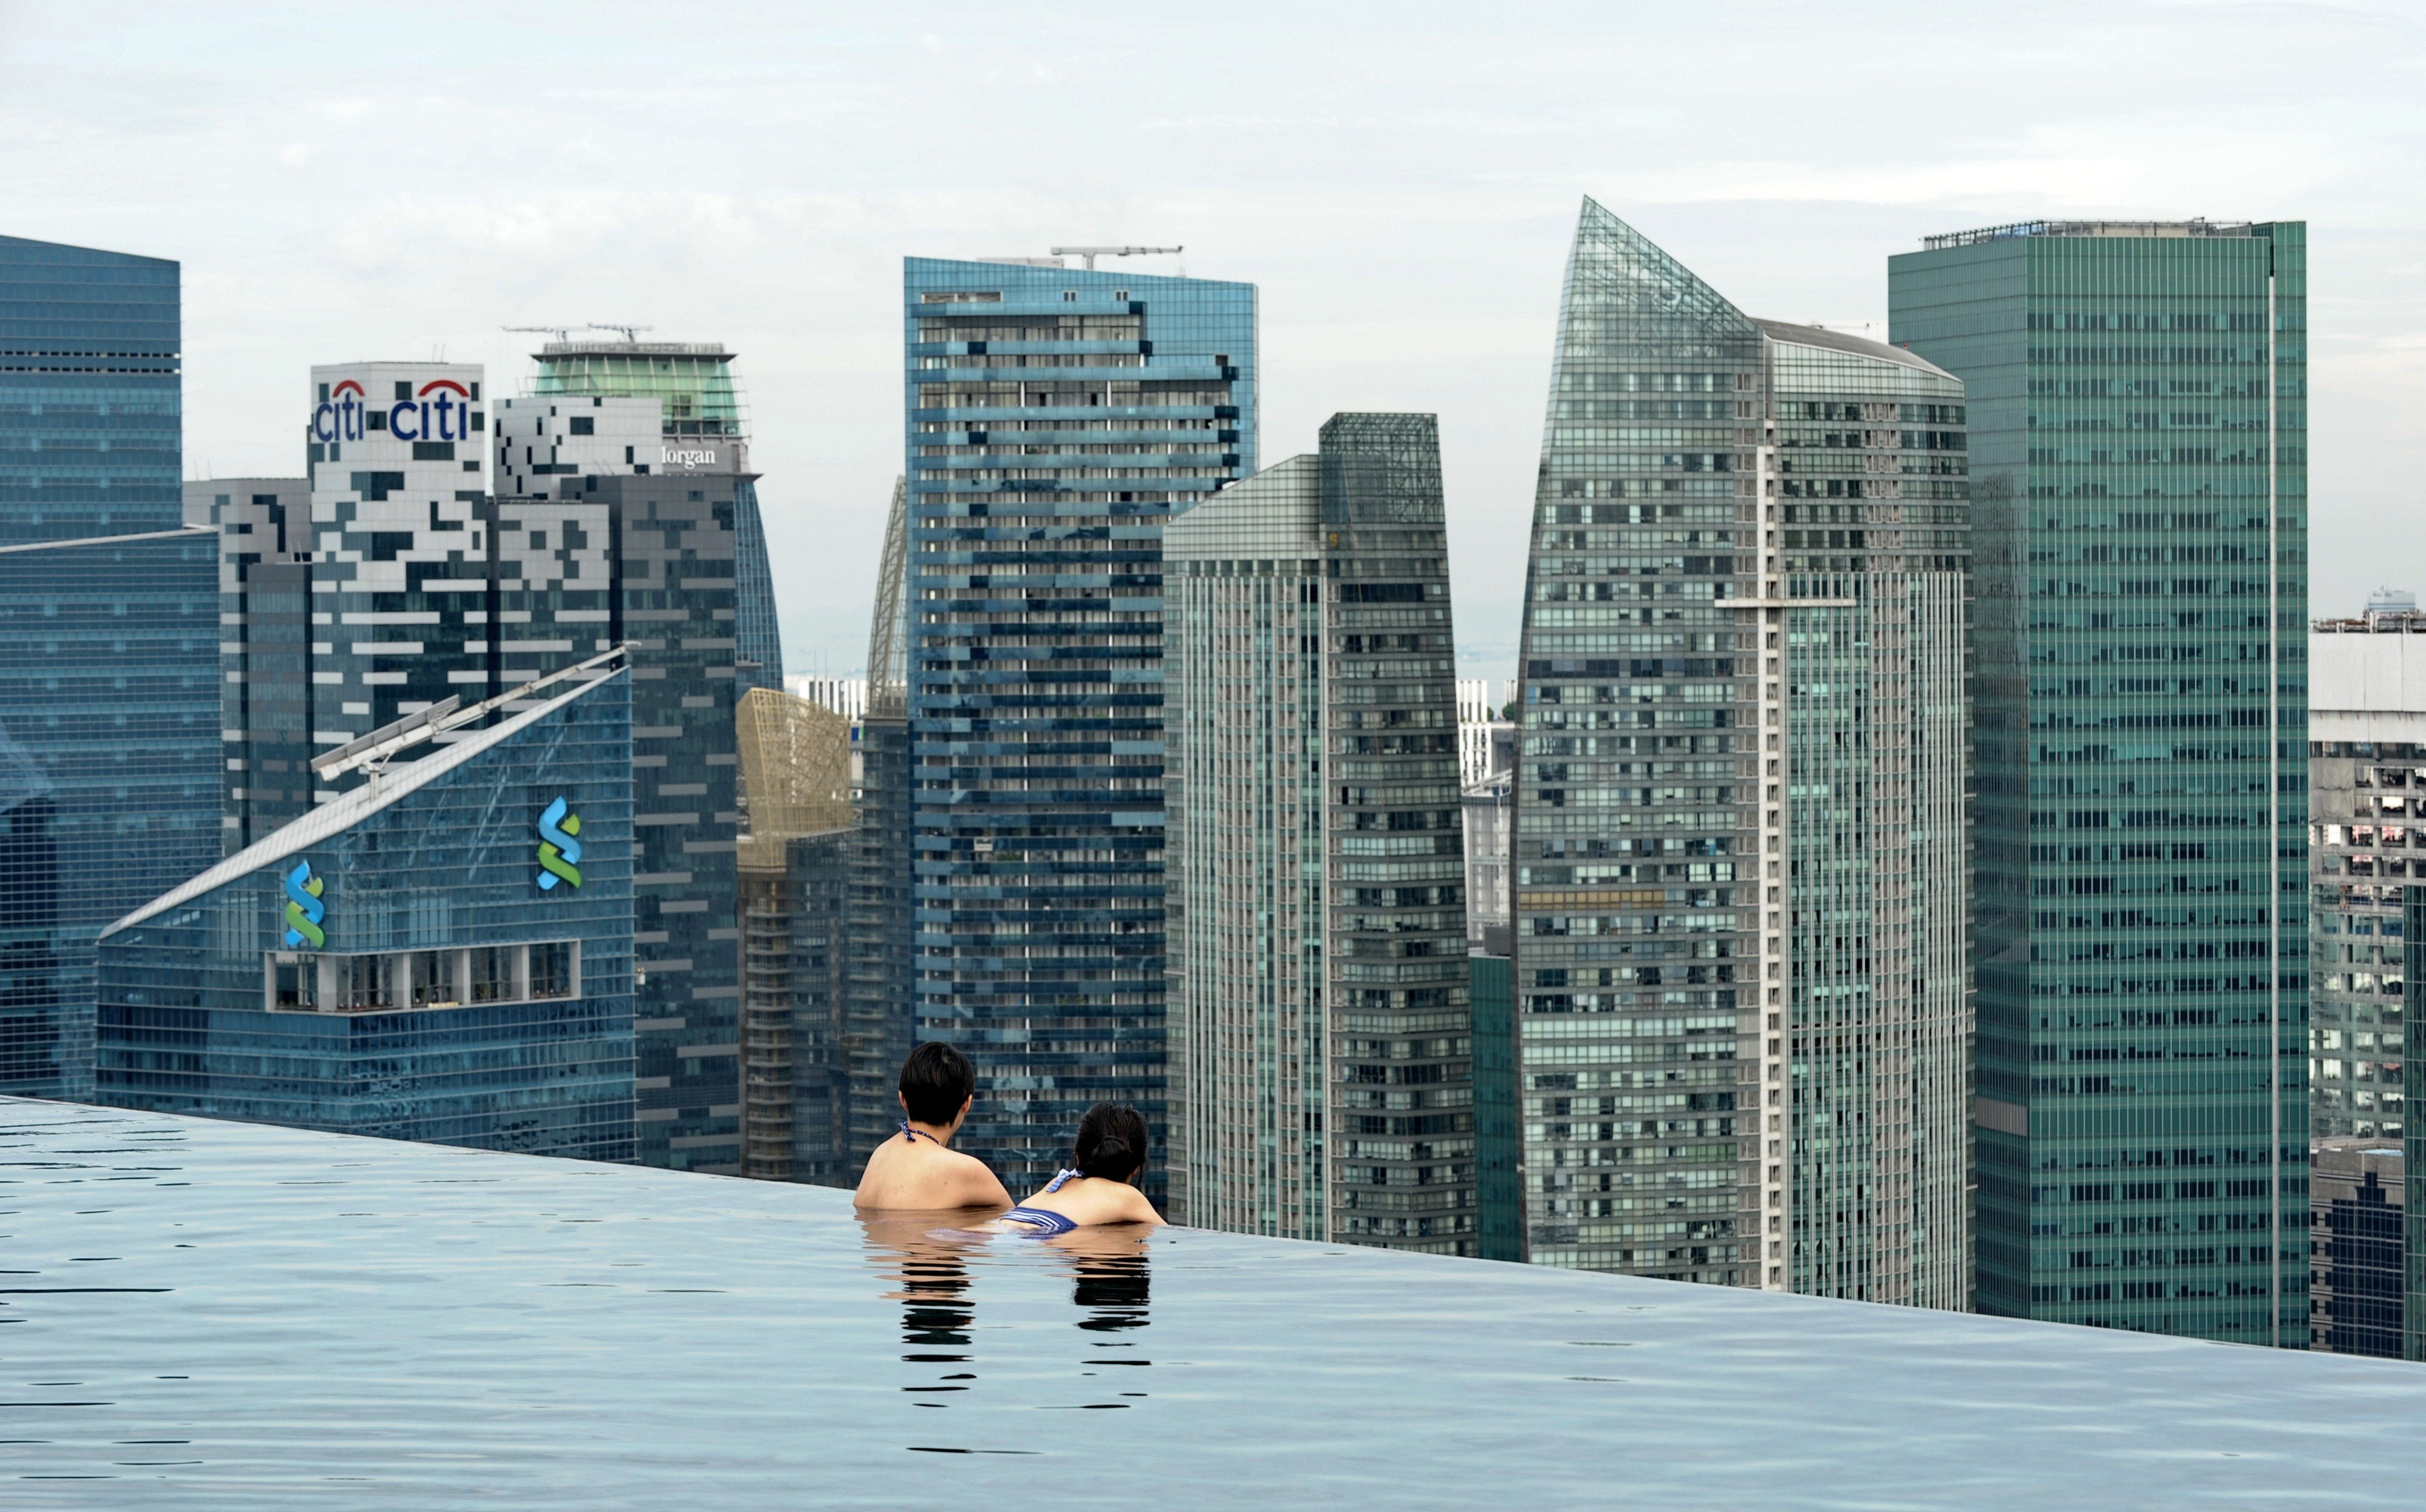 Visitors look at a view of the city skyline from the rooftop pool of the Marina Bay Sands resort hotel in Singapore